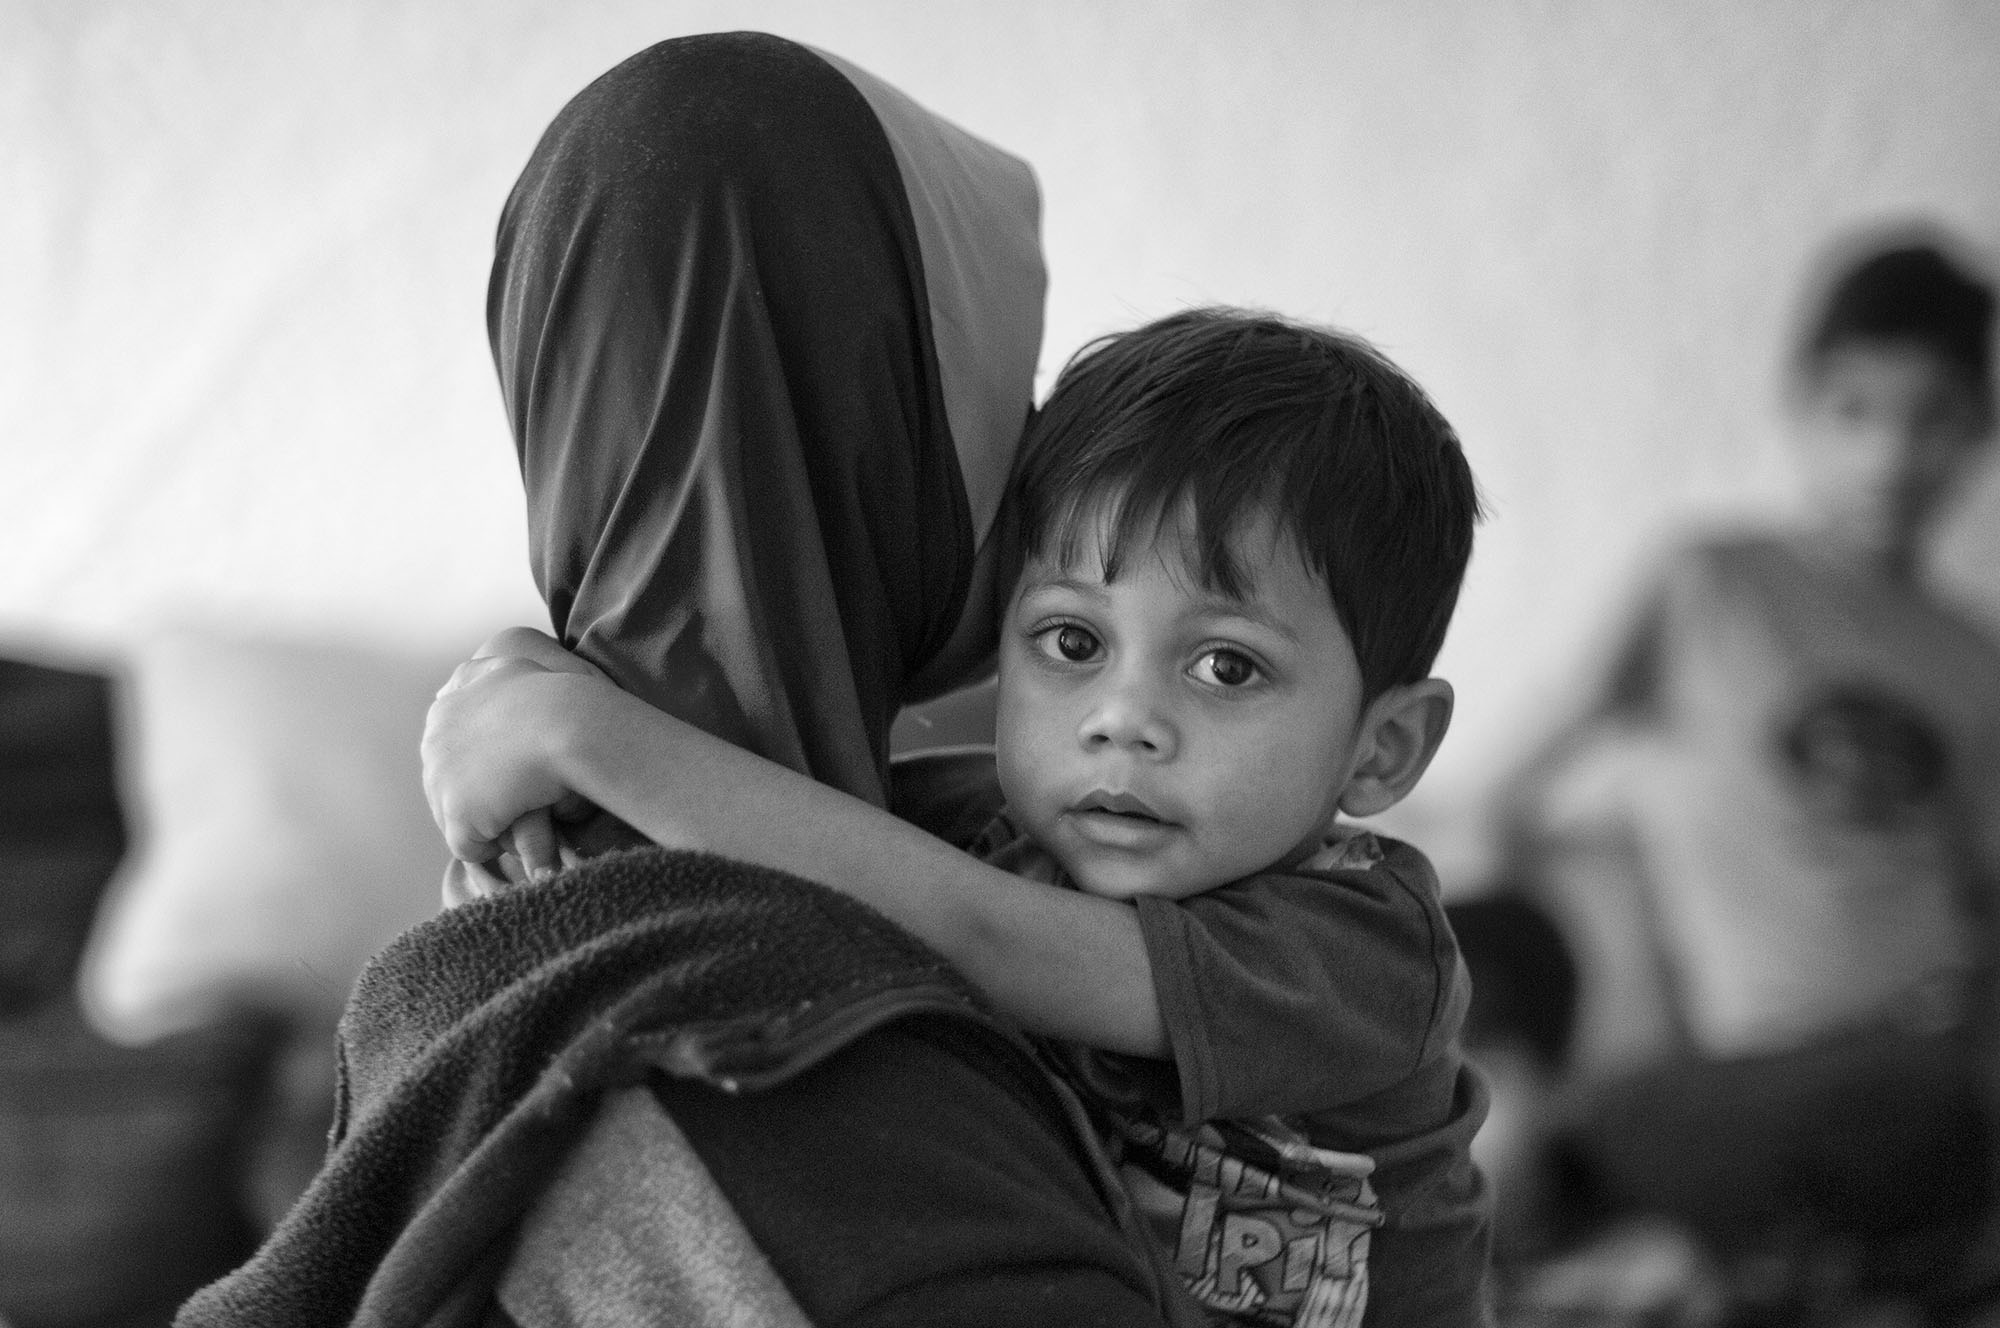 Mohammed Sultan, a three-year-old Rohingya boy, clings to his mother in a neighbor's home.  Mohammed was born in a refugee camp in Bangladesh.